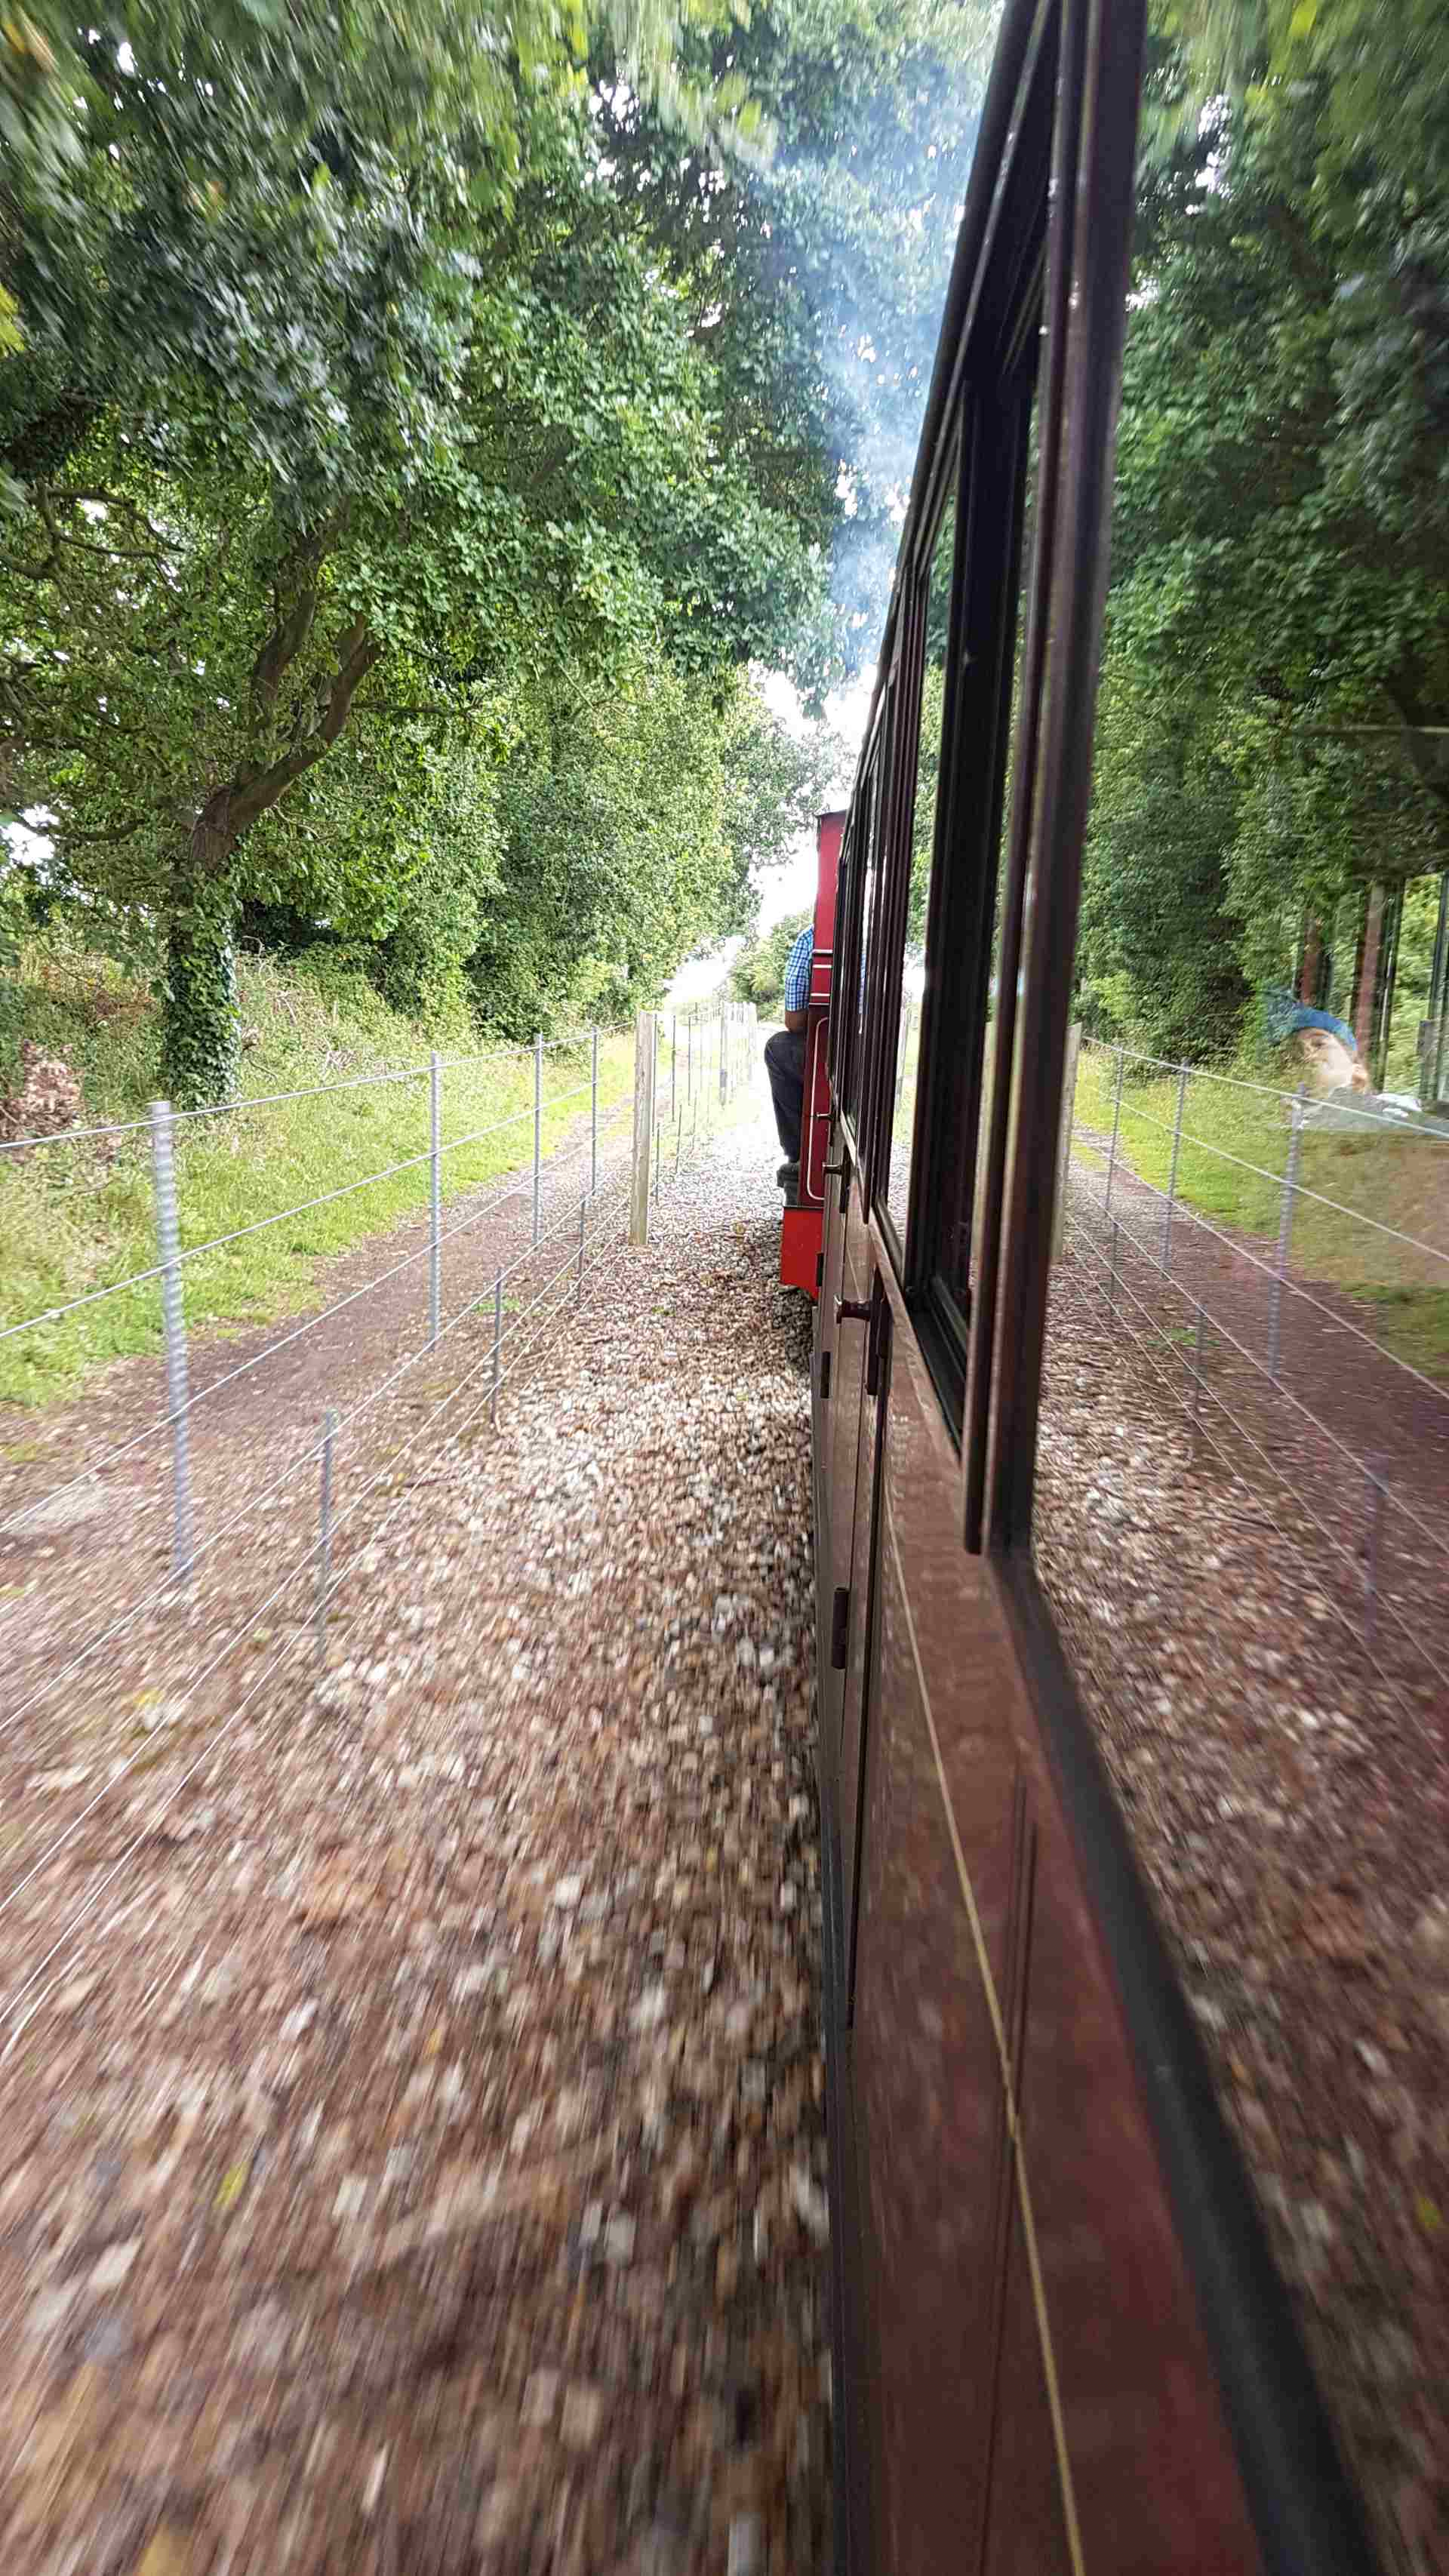 Steaming along at the Bure Valley Railway